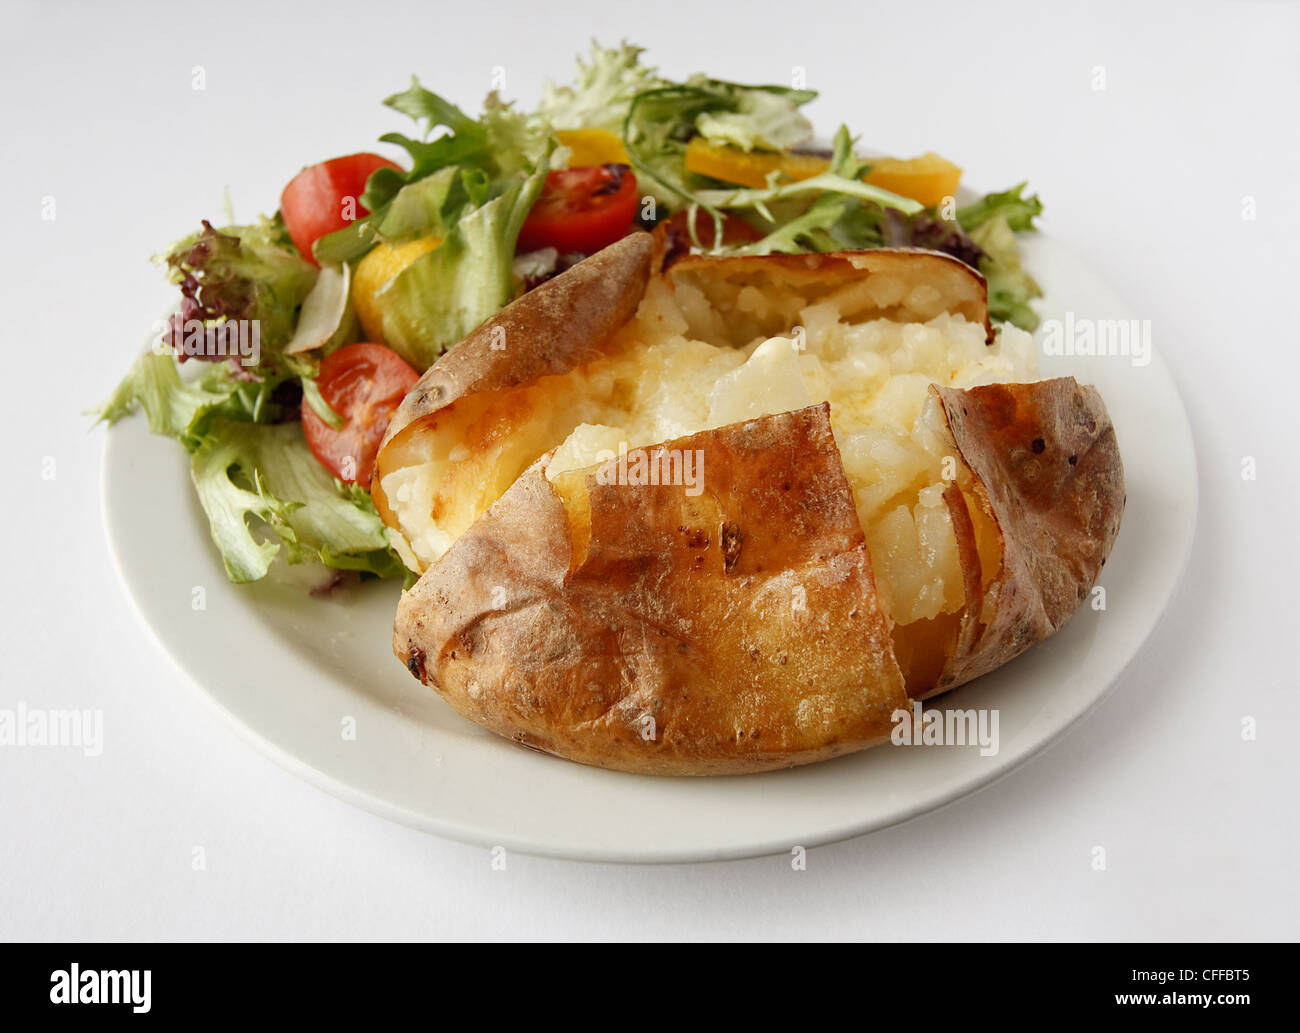 A plain butter baked potato on a plate with side salad - Stock Image